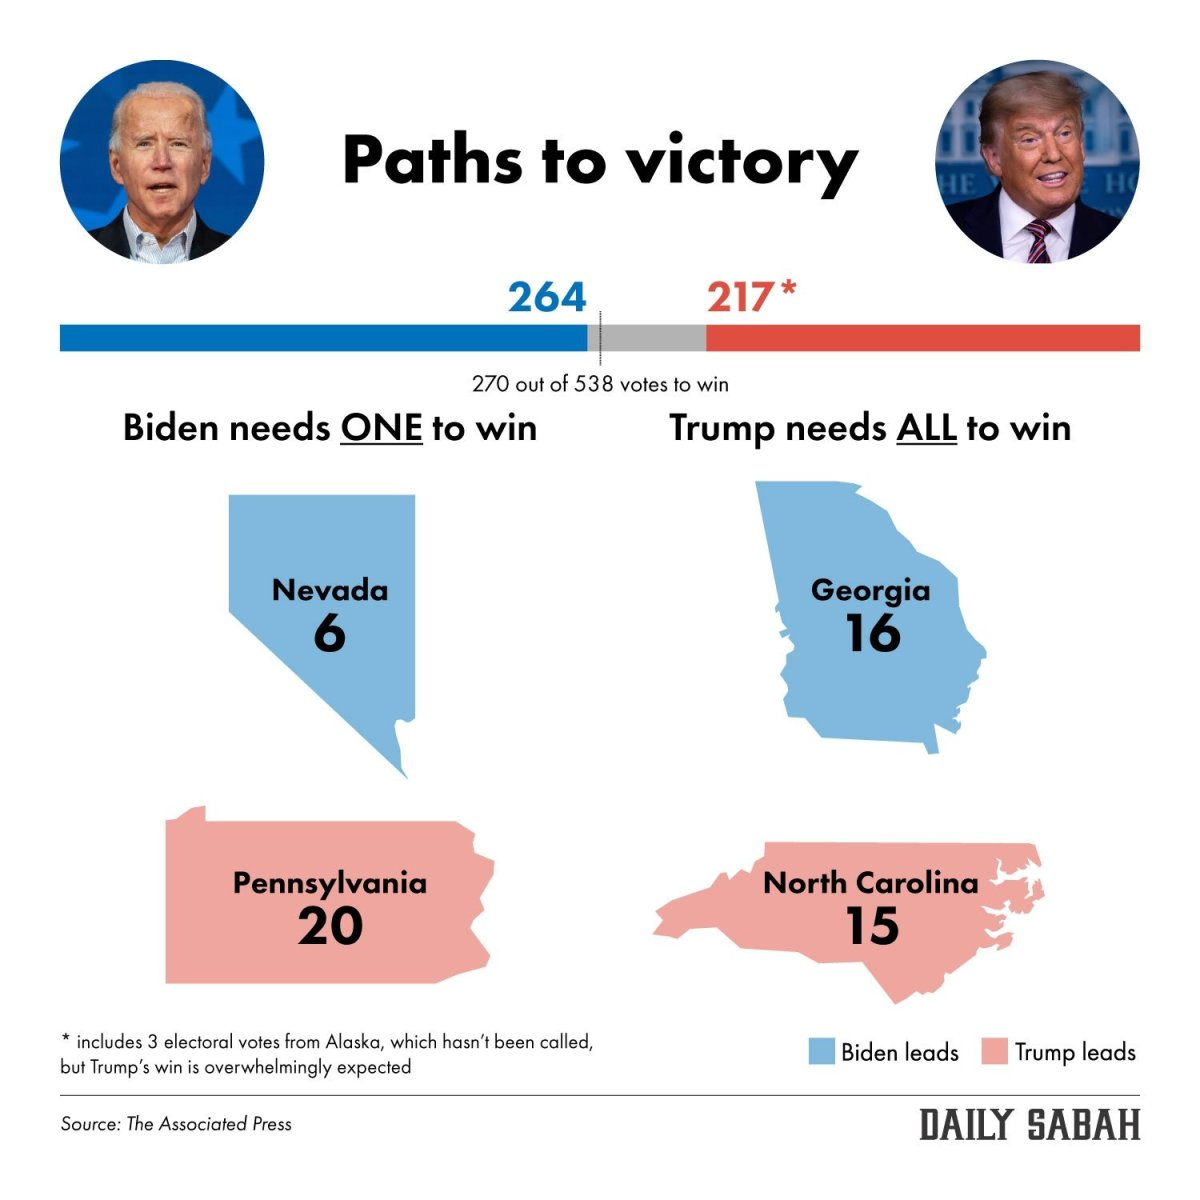 Biden 1 state away from victory, edges ahead in Georgia, Pennsylvania |  Daily Sabah